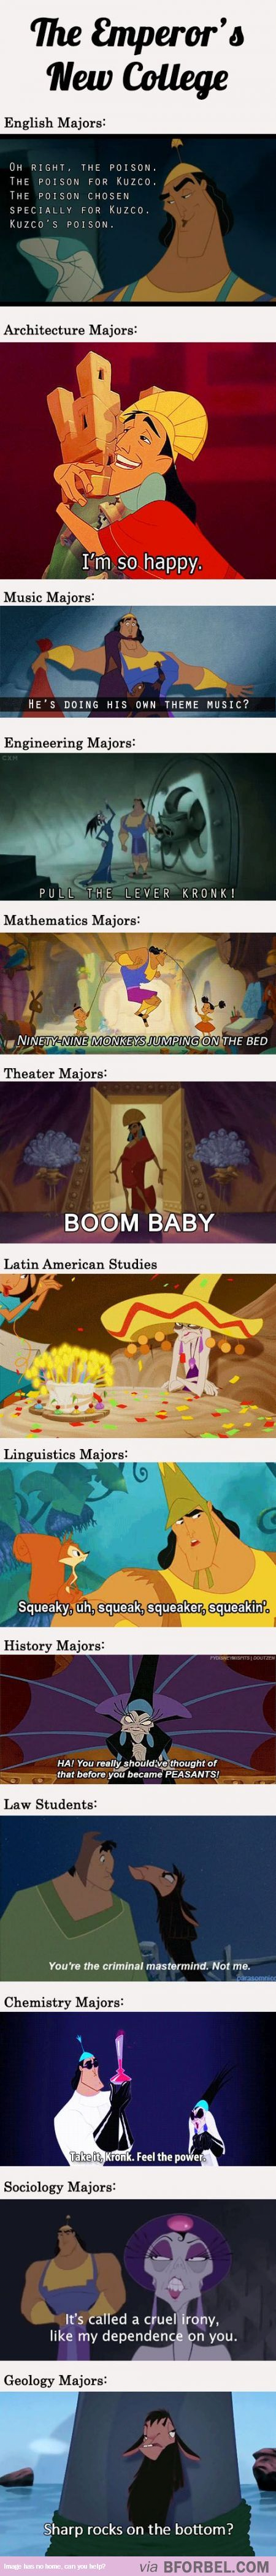 The Emperors New Groove/College- couldn't help to pin it. It shows such creative thought.